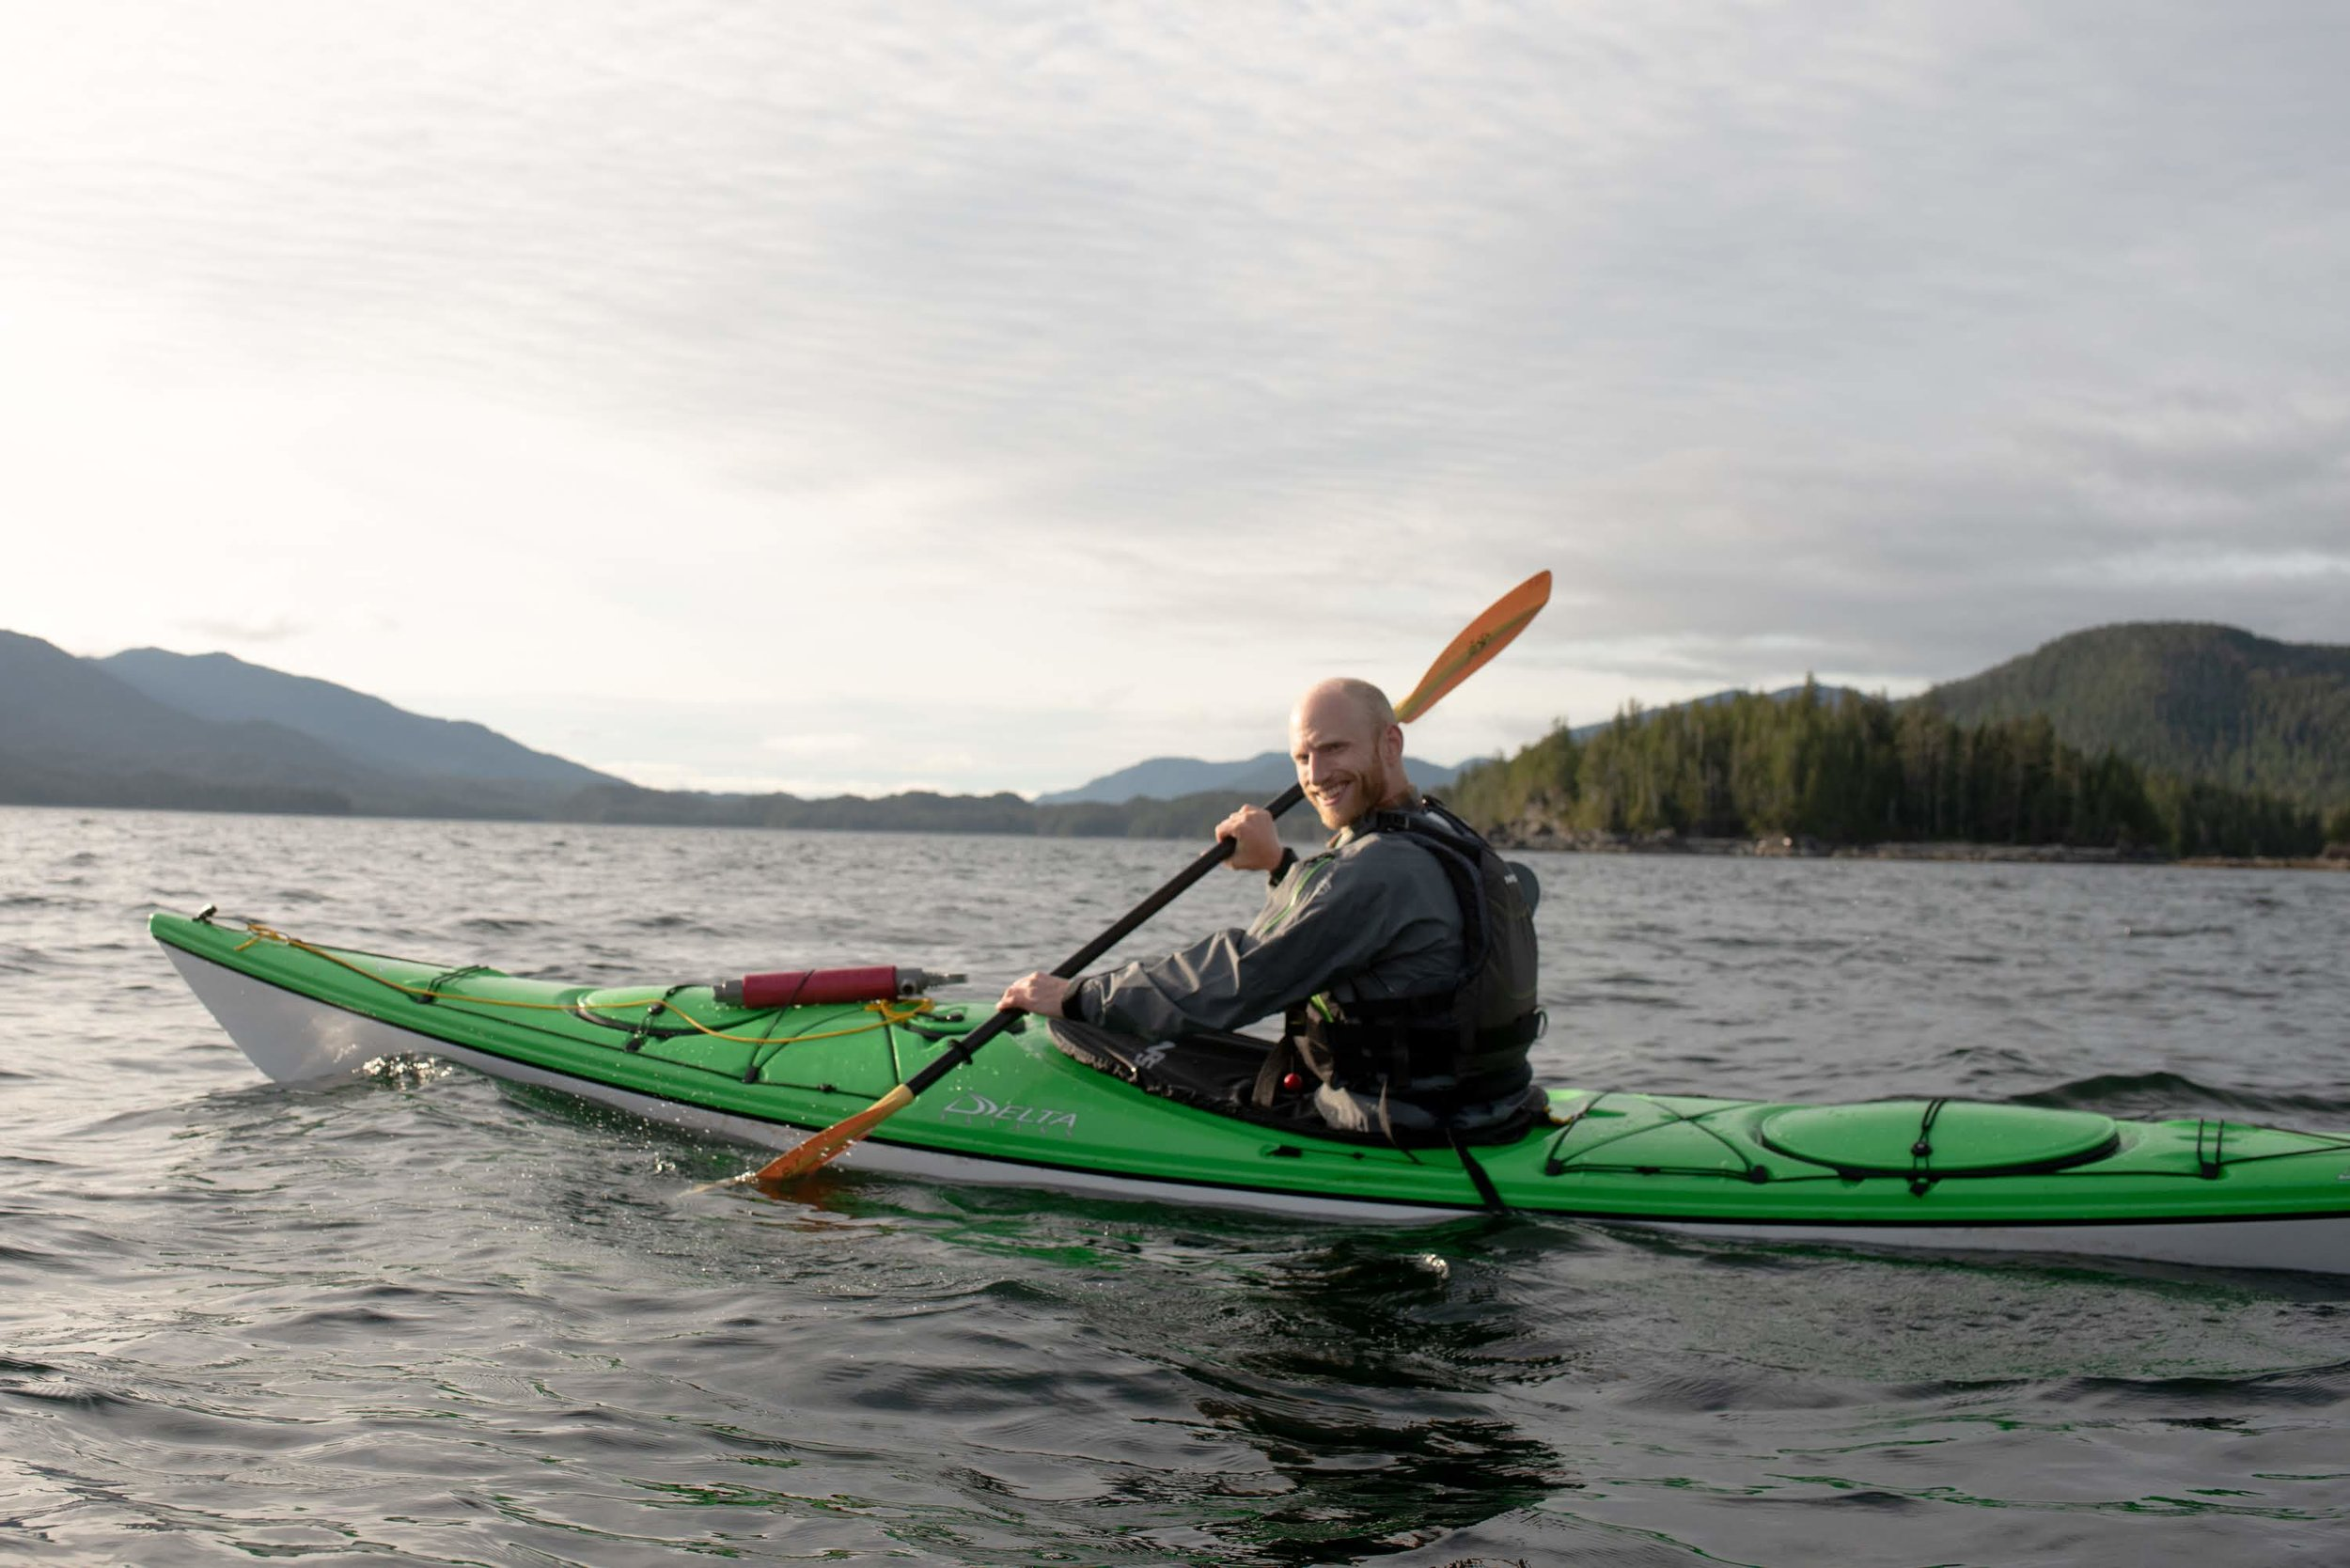 Southeast alaska is a wilderness playground, tim is in PERMANENT RECESS.